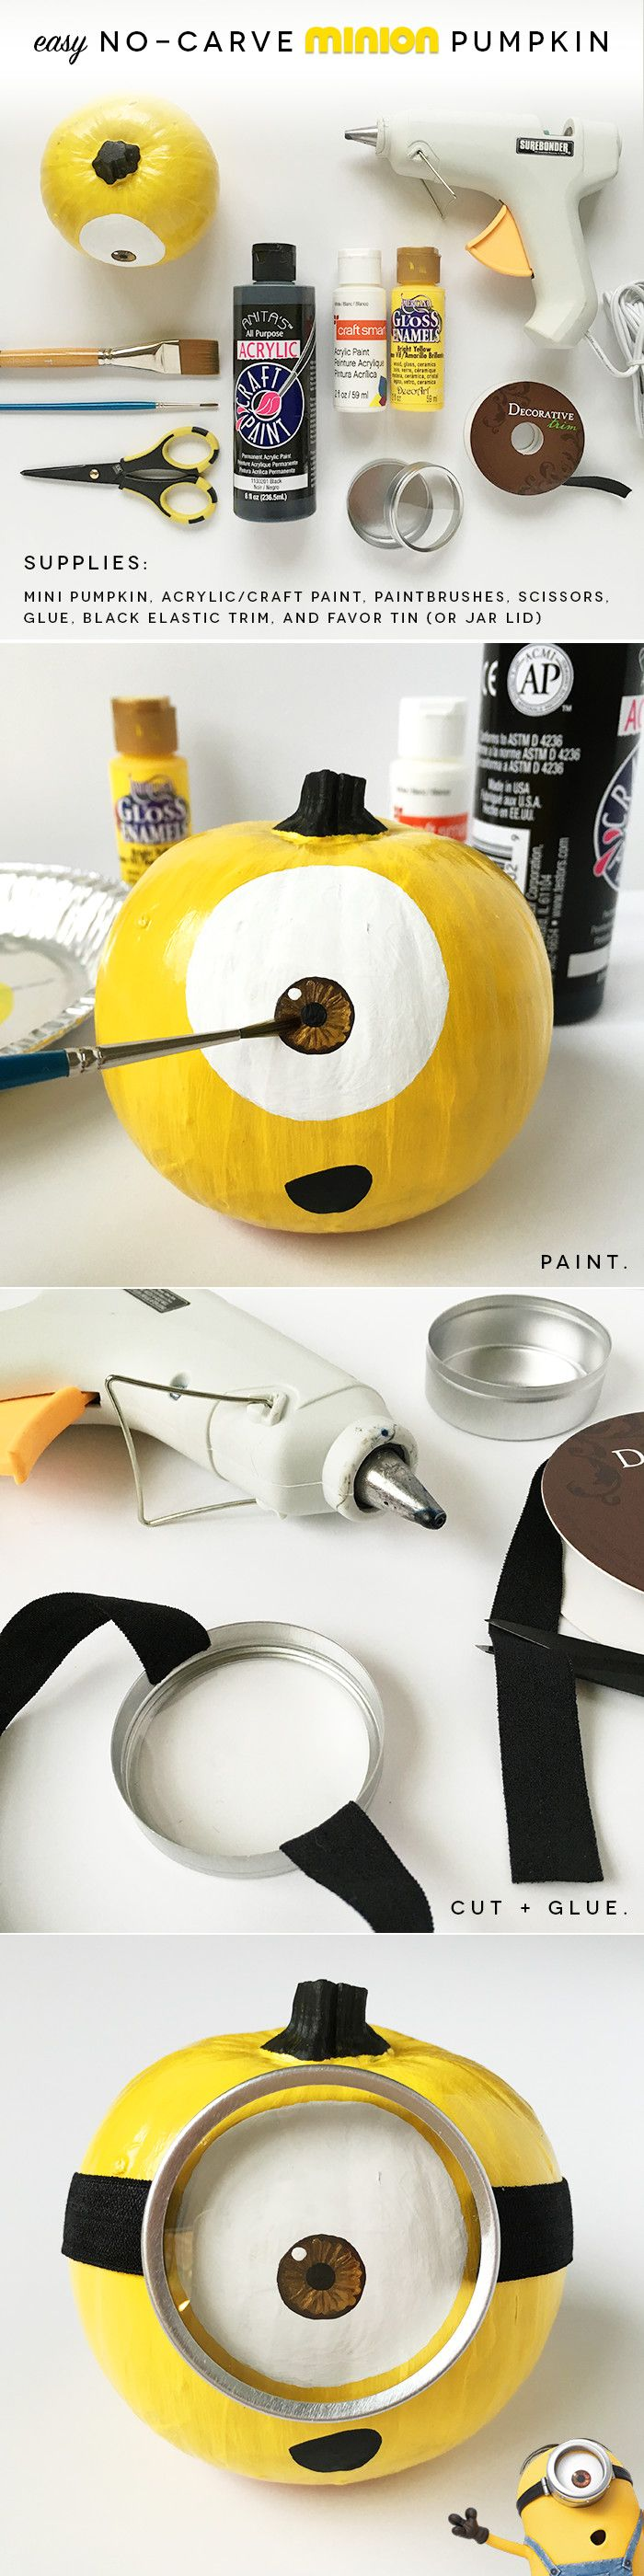 How to Make an EASY, No-Carve, Mini Minion Pumpkin | Pretty Peas Paperie